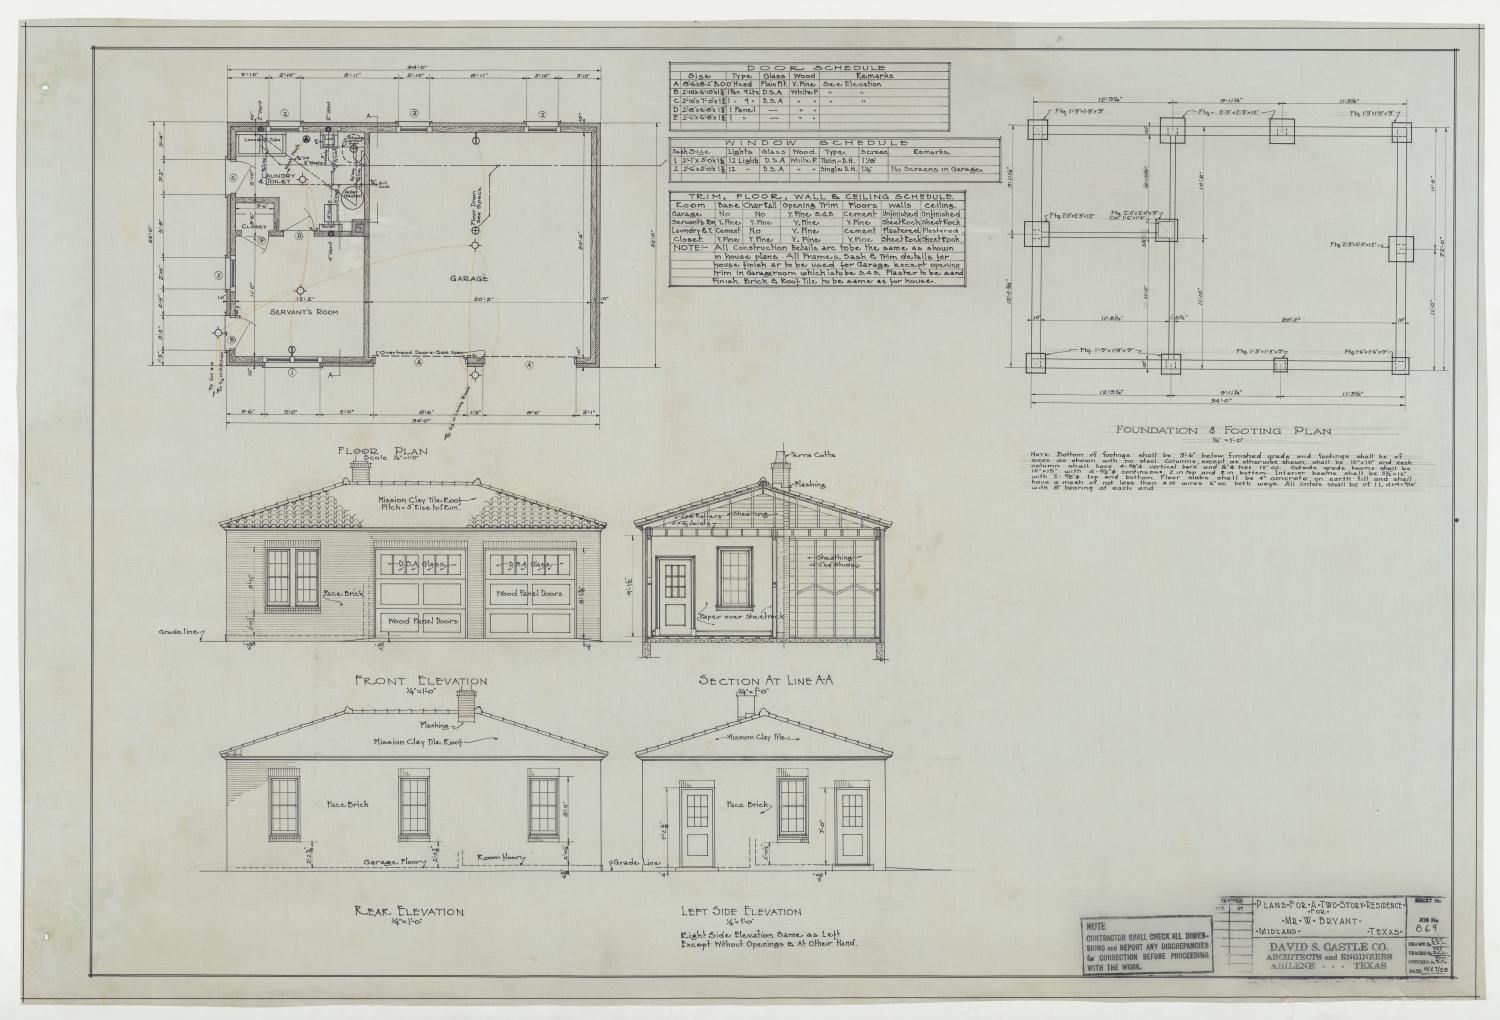 Bryant Residence Midland Texas Floor Plan Footing Foundation Plan And Elevations The Portal To Texas History